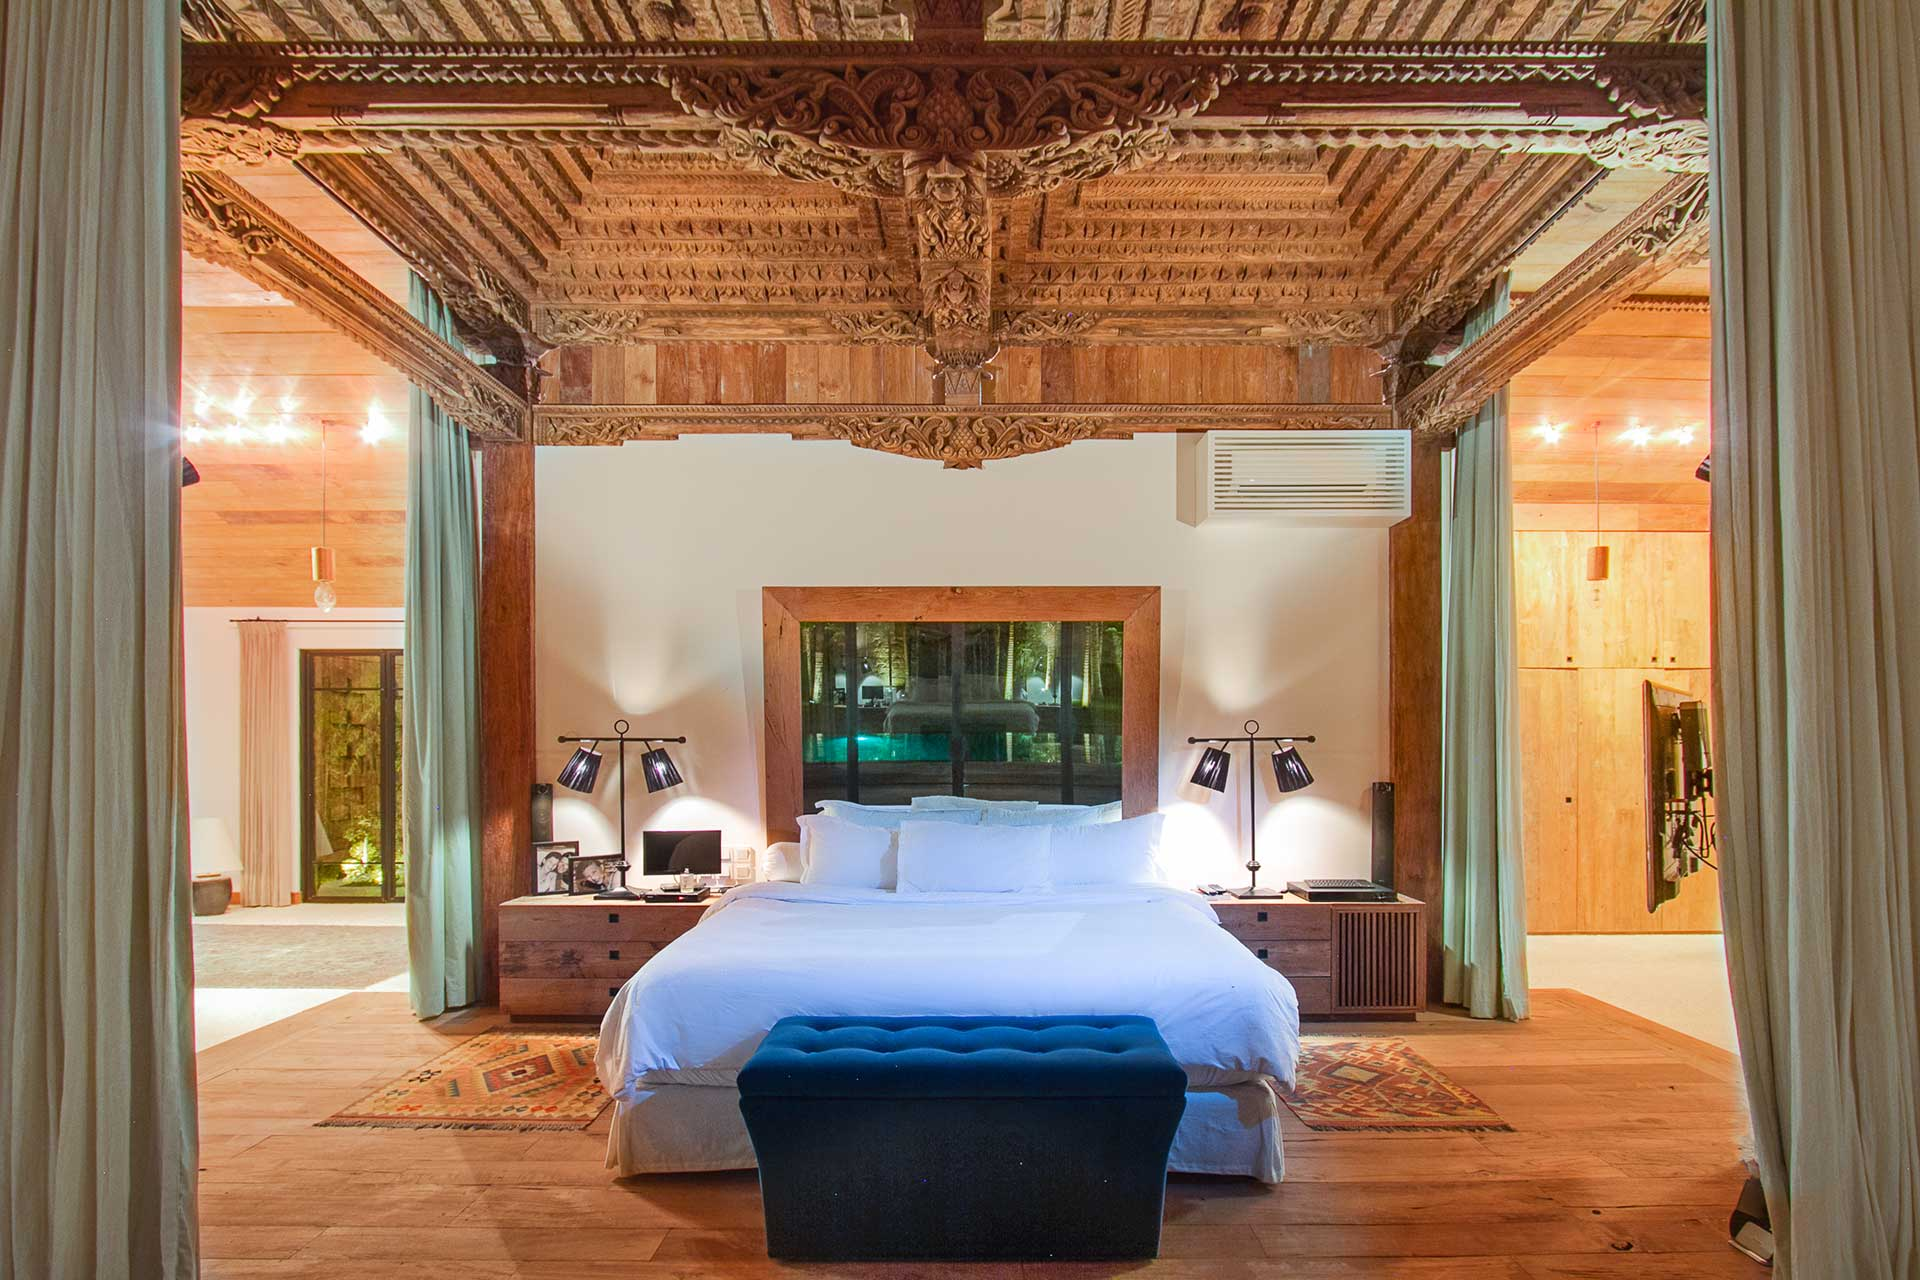 Grand Master Bedroom with extra high ceilings